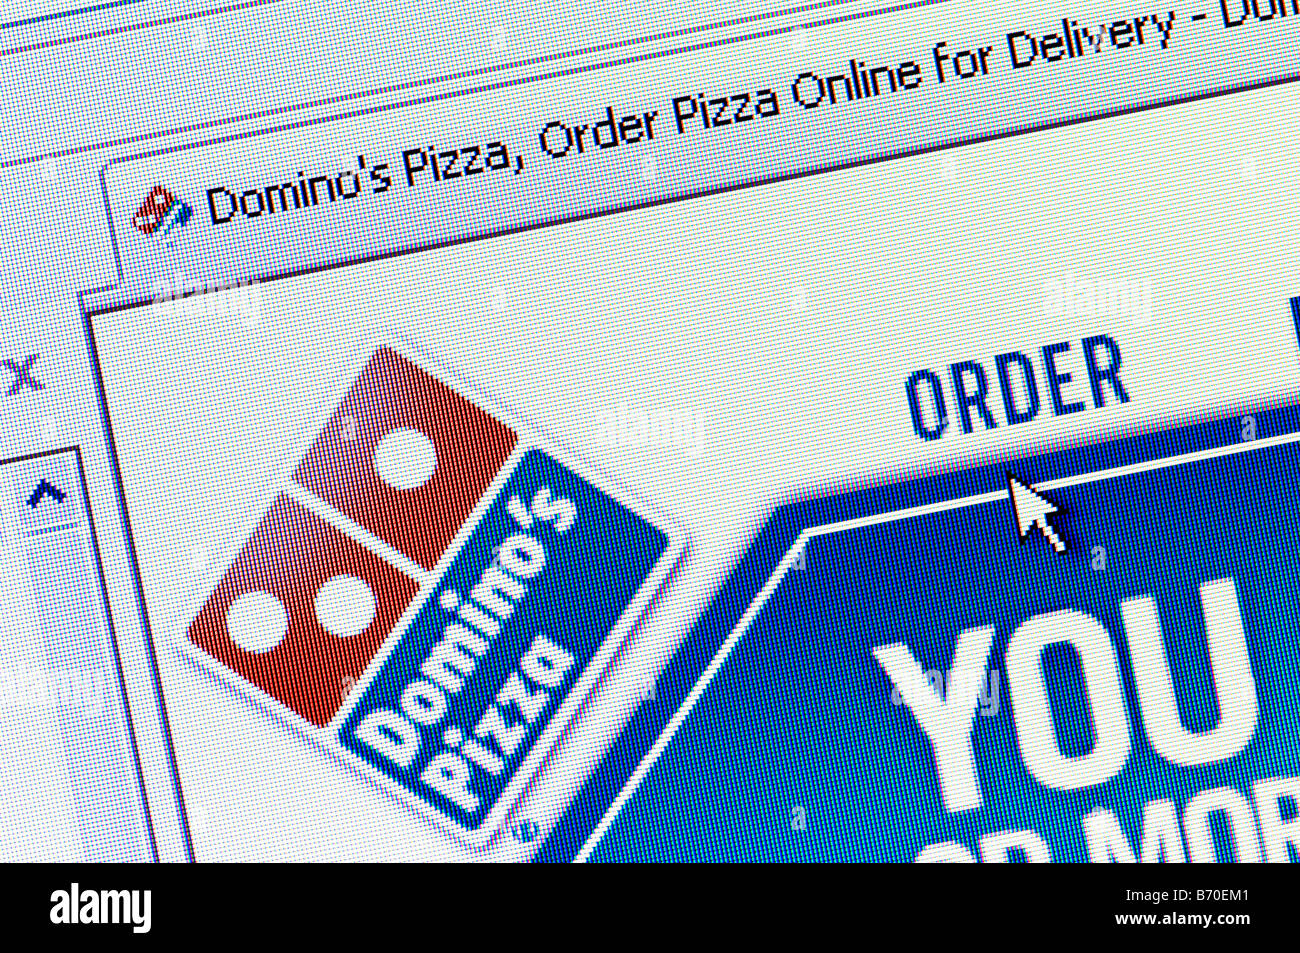 Dominos pizza online order - Macro Screenshot Of Domino S Pizza Website Editorial Use Only